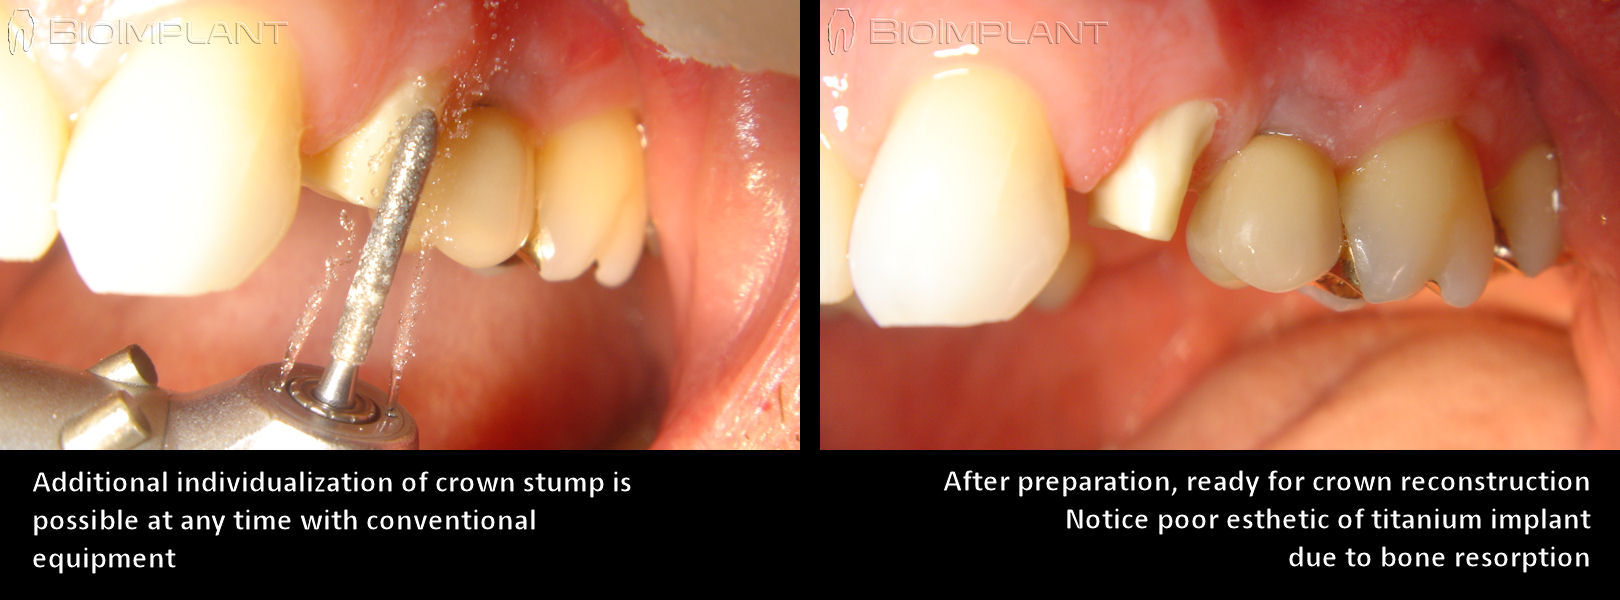 ceramic_dental_implant_crown_stump_adaptation